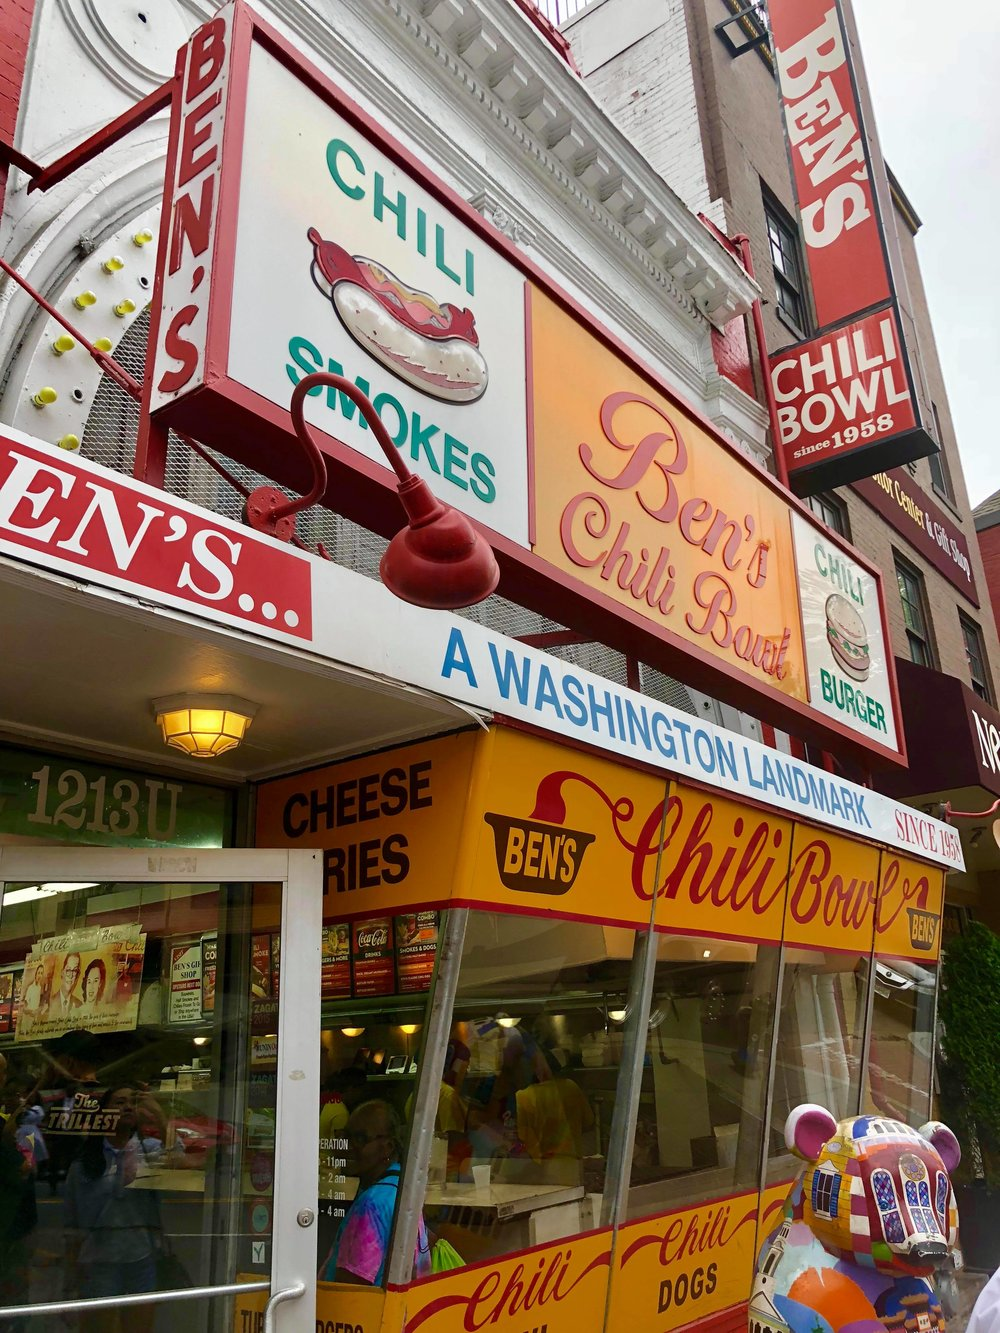 - By the way, we were not full after this, so....we ended up the capital's iconic Ben's Chili Bowl, just around the corner from Compass Rose, to try one of their famous chili dogs.